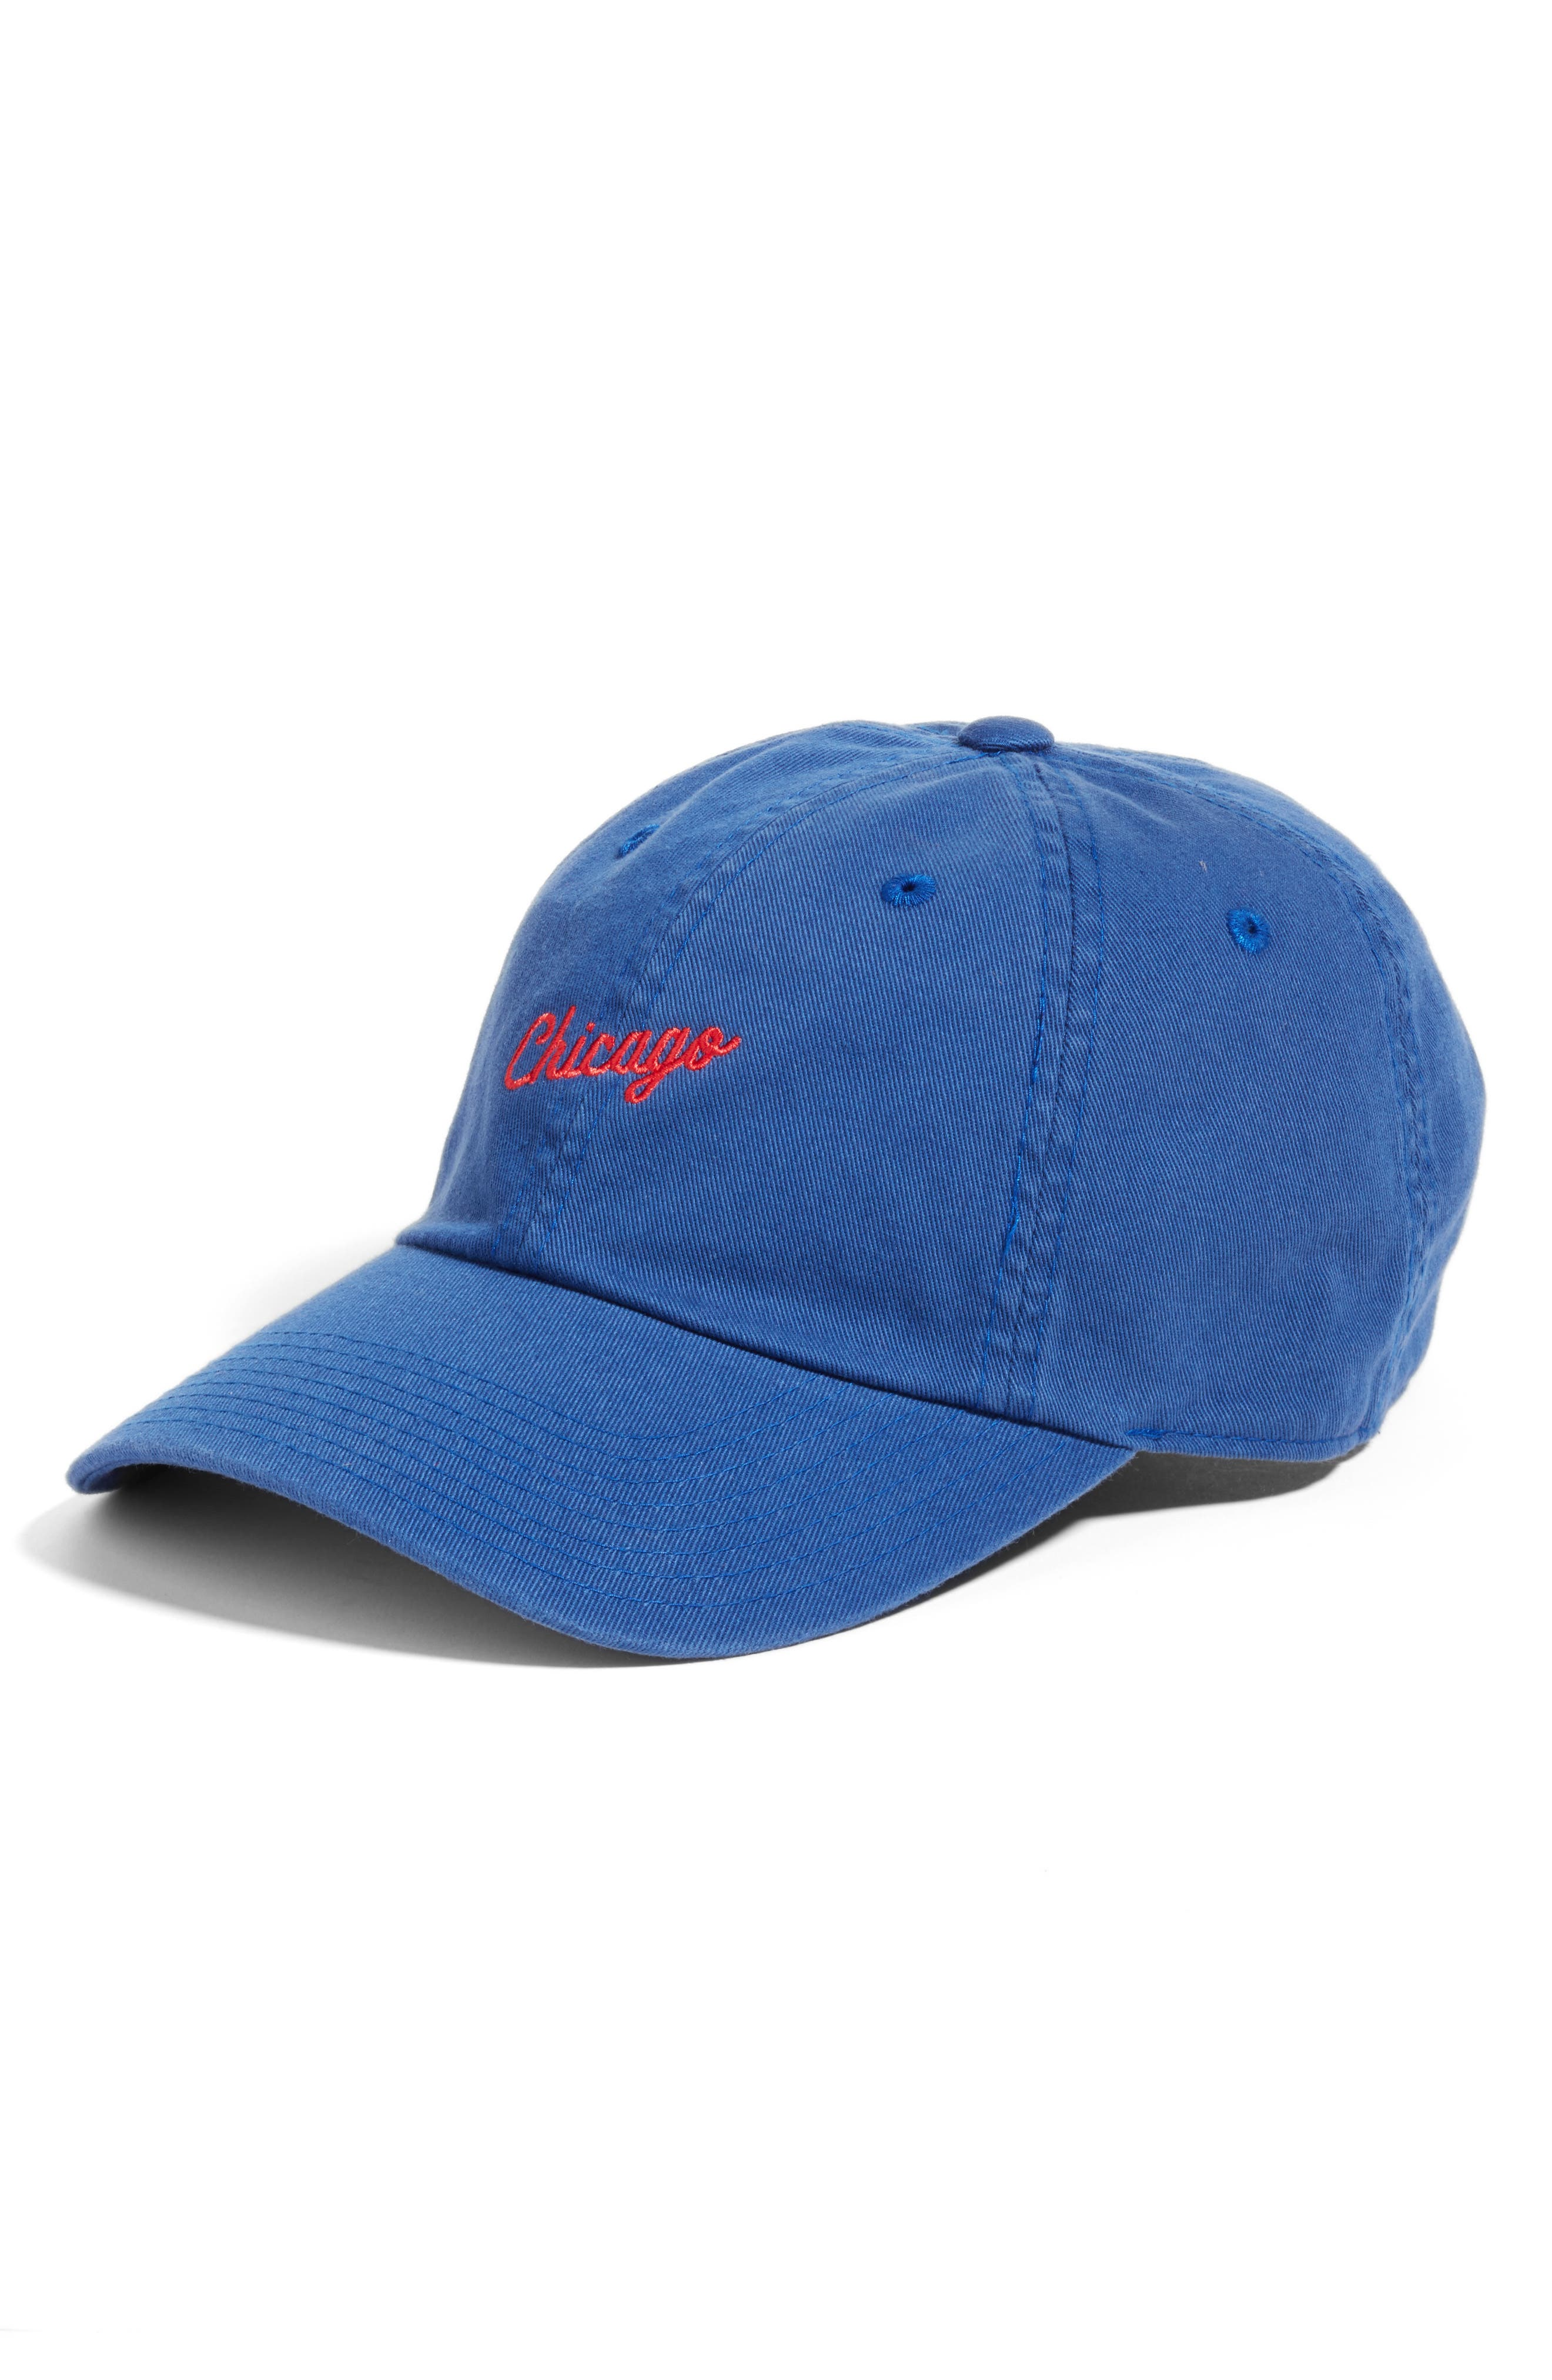 Boardshort - Chicago Baseball Cap,                             Main thumbnail 1, color,                             Bay Blue